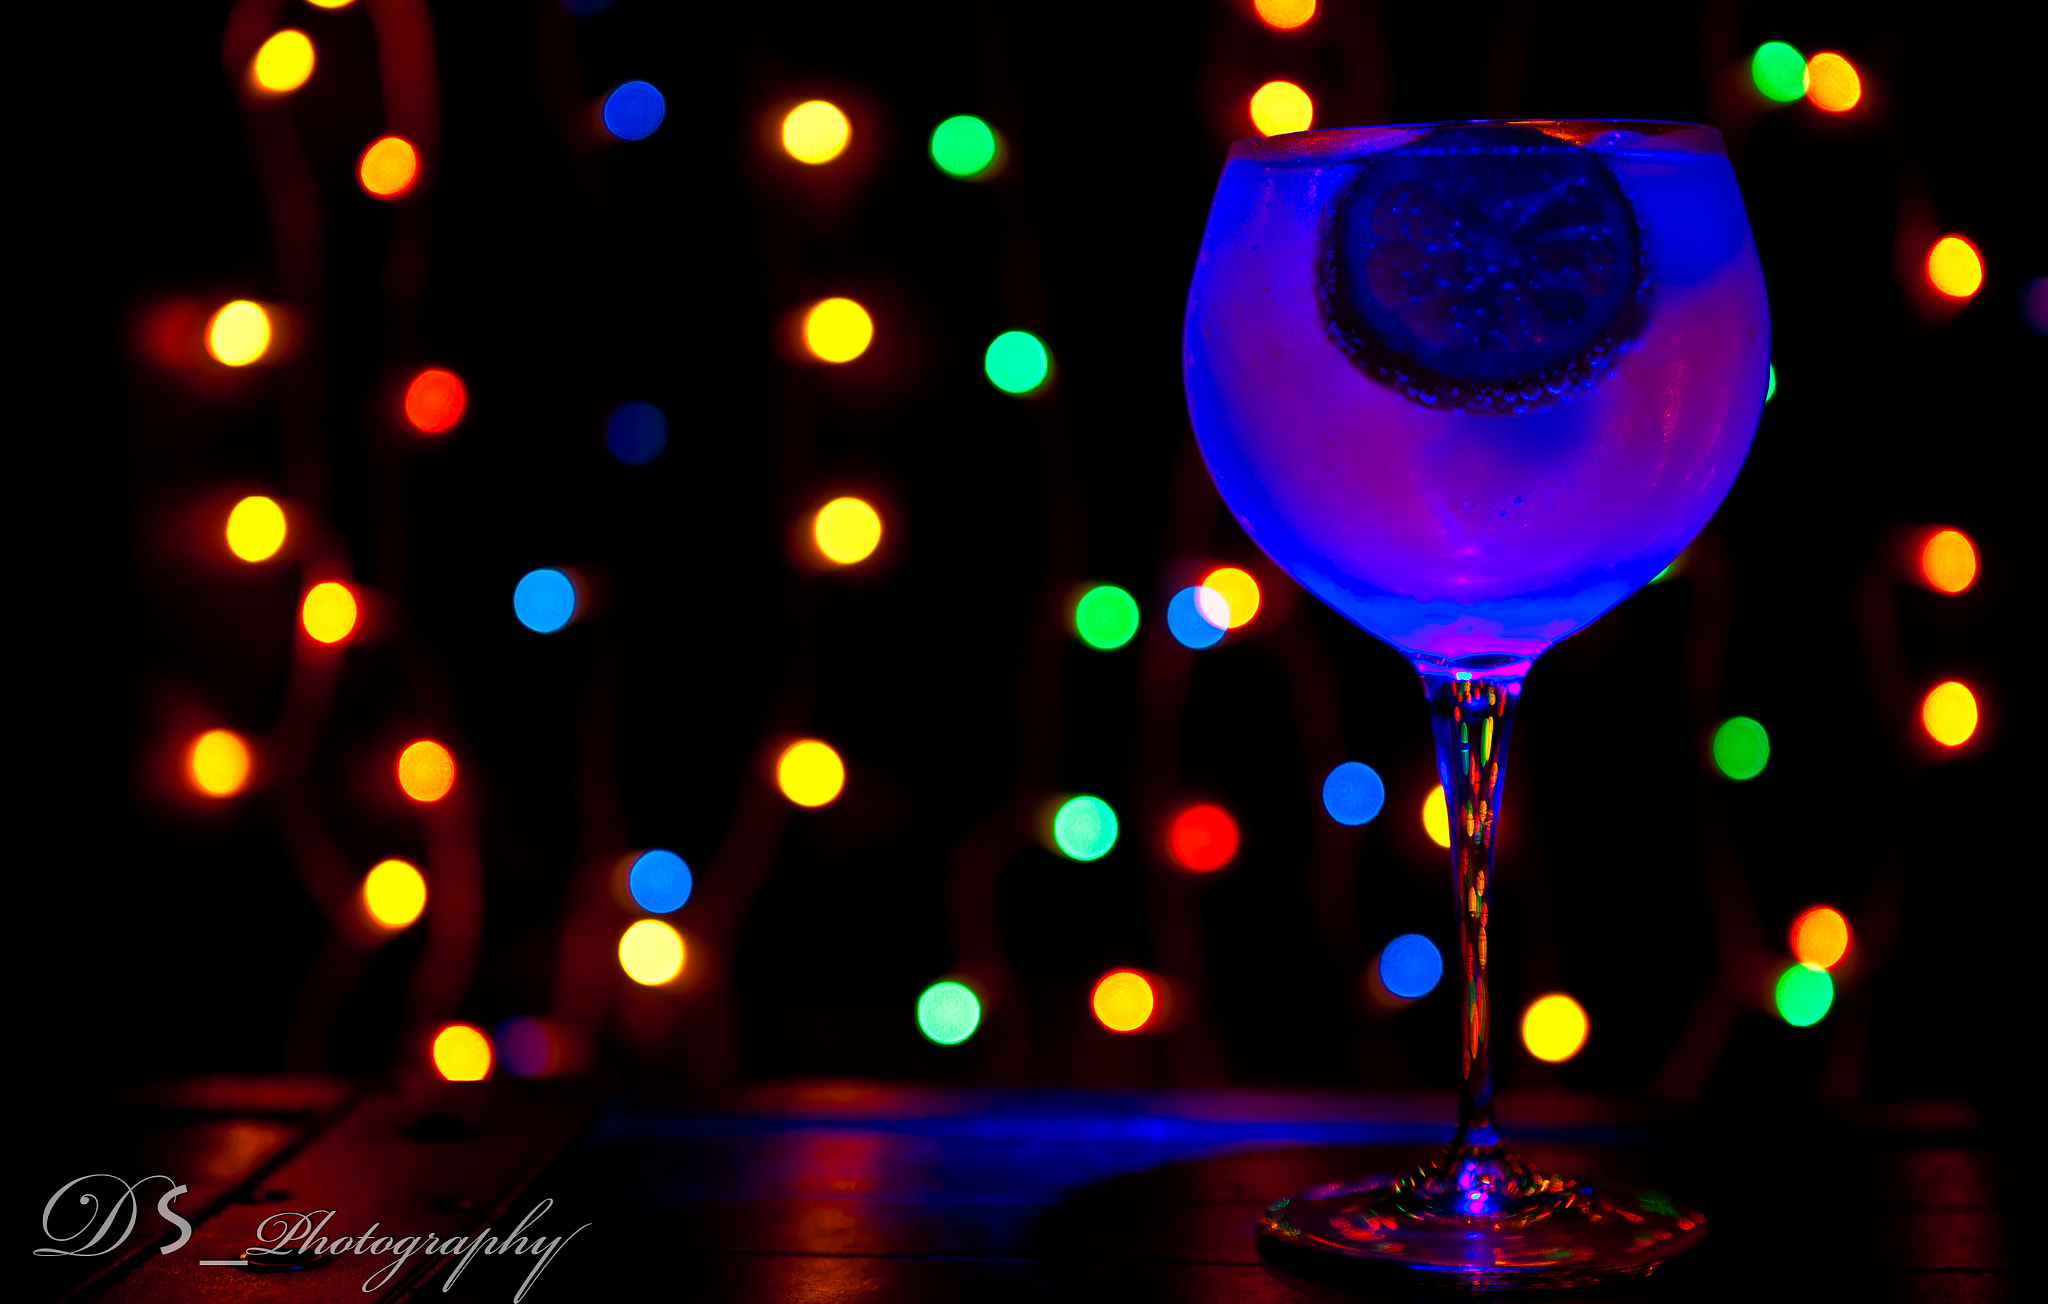 Photograph Saturday Night Gin Tonic by Daniel Sousa Malandra on 500px